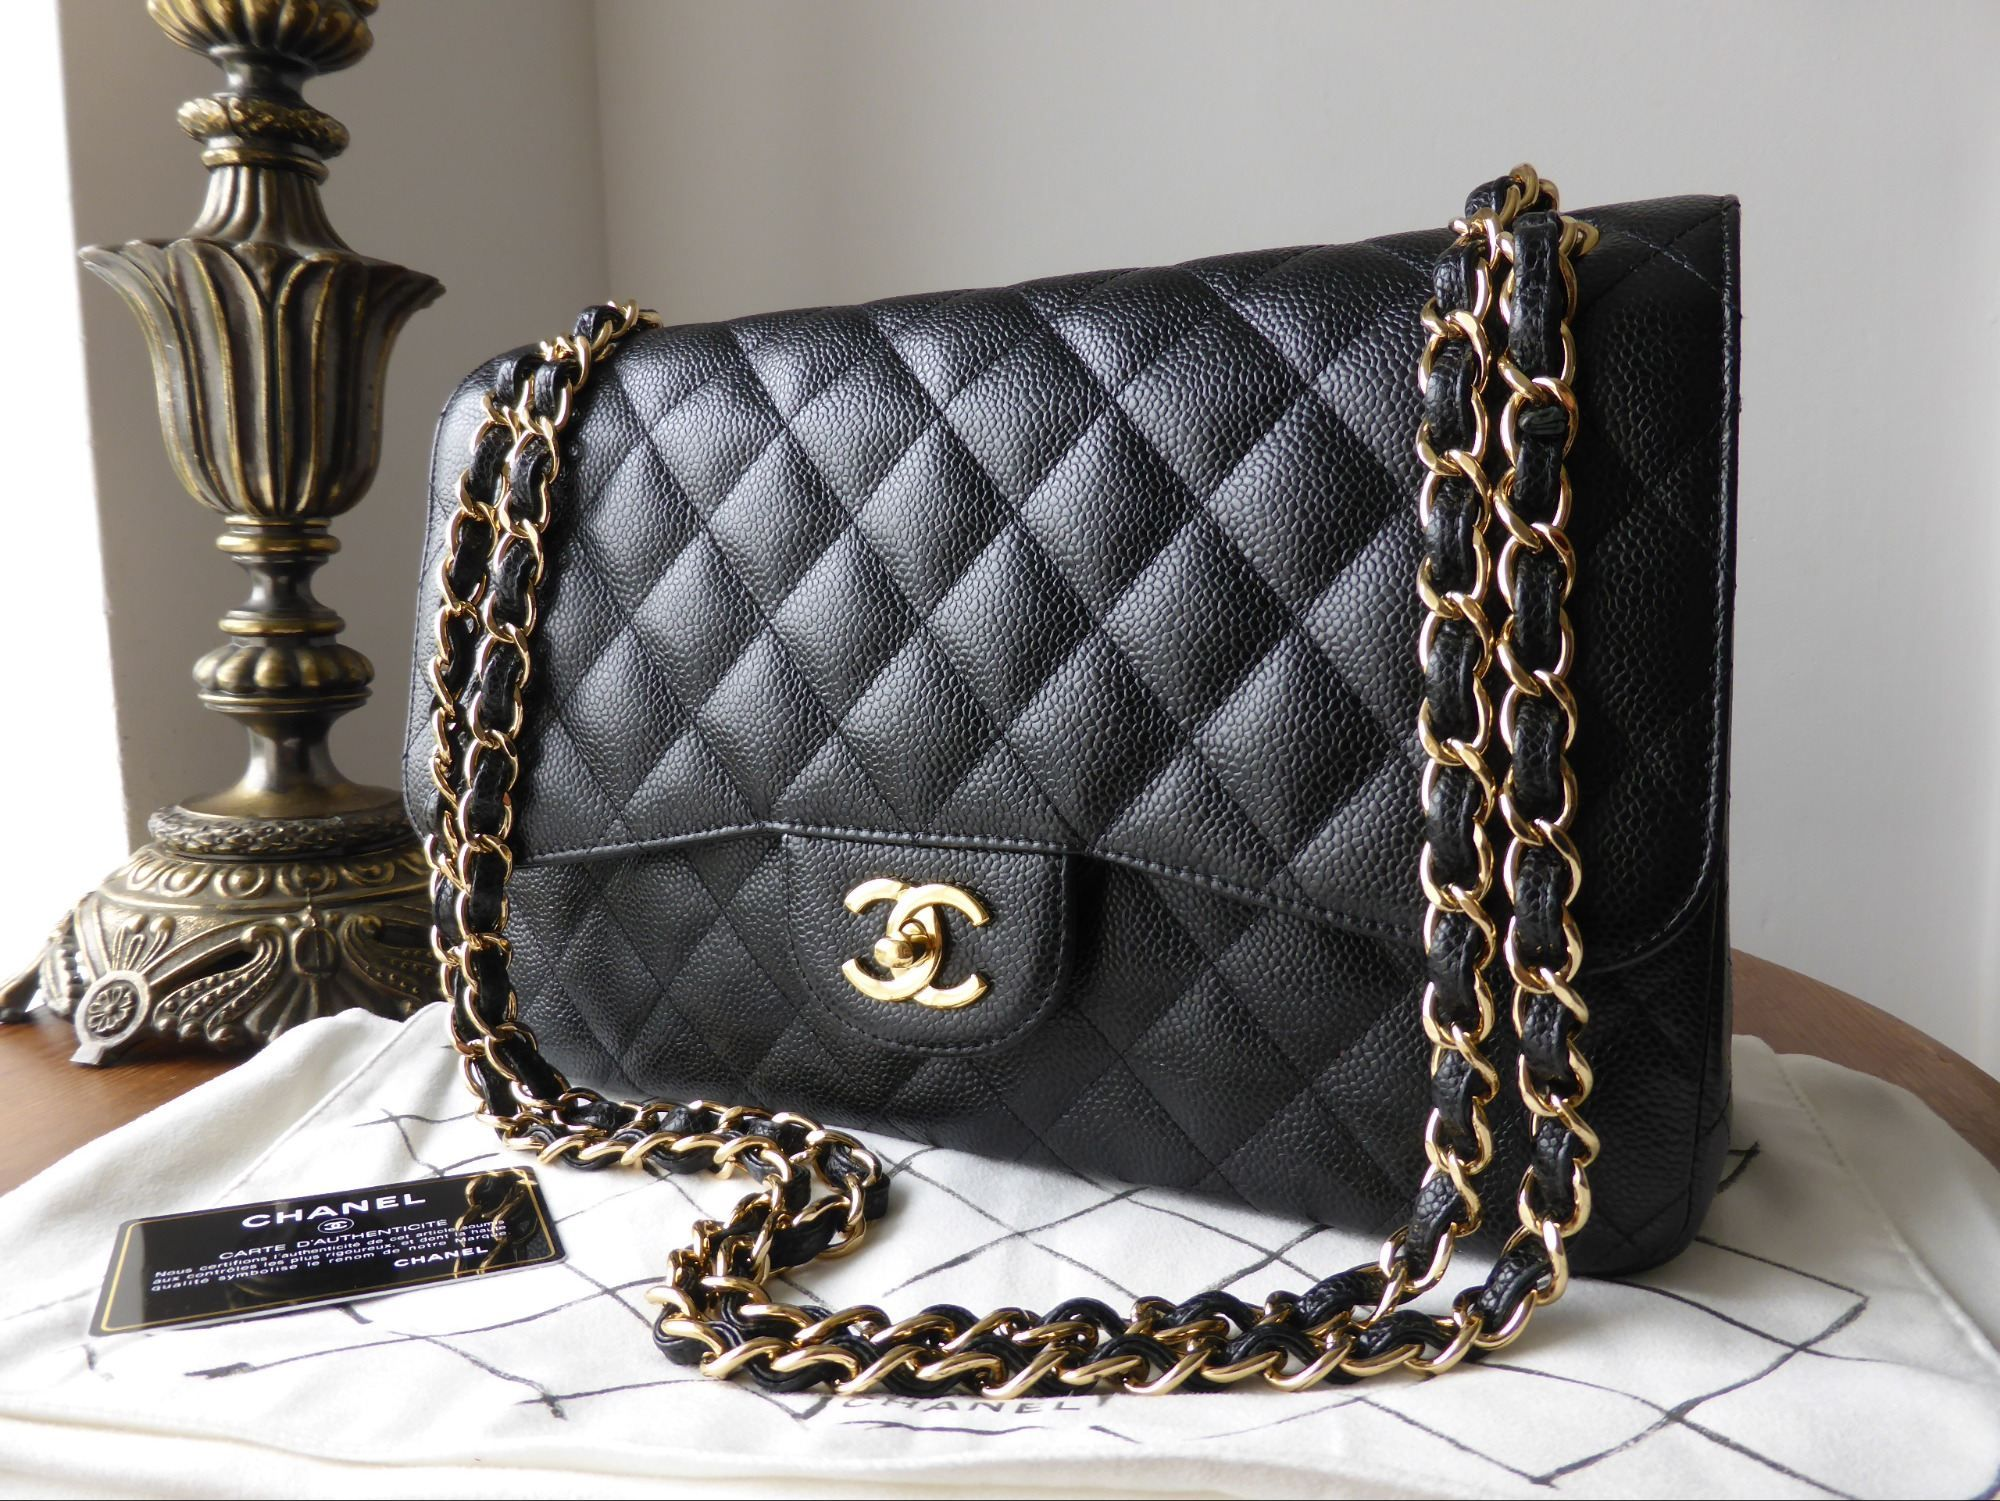 Chanel Timeless Classic 2 55 Jumbo Flap Bag In Black Caviar With Gold Hardware